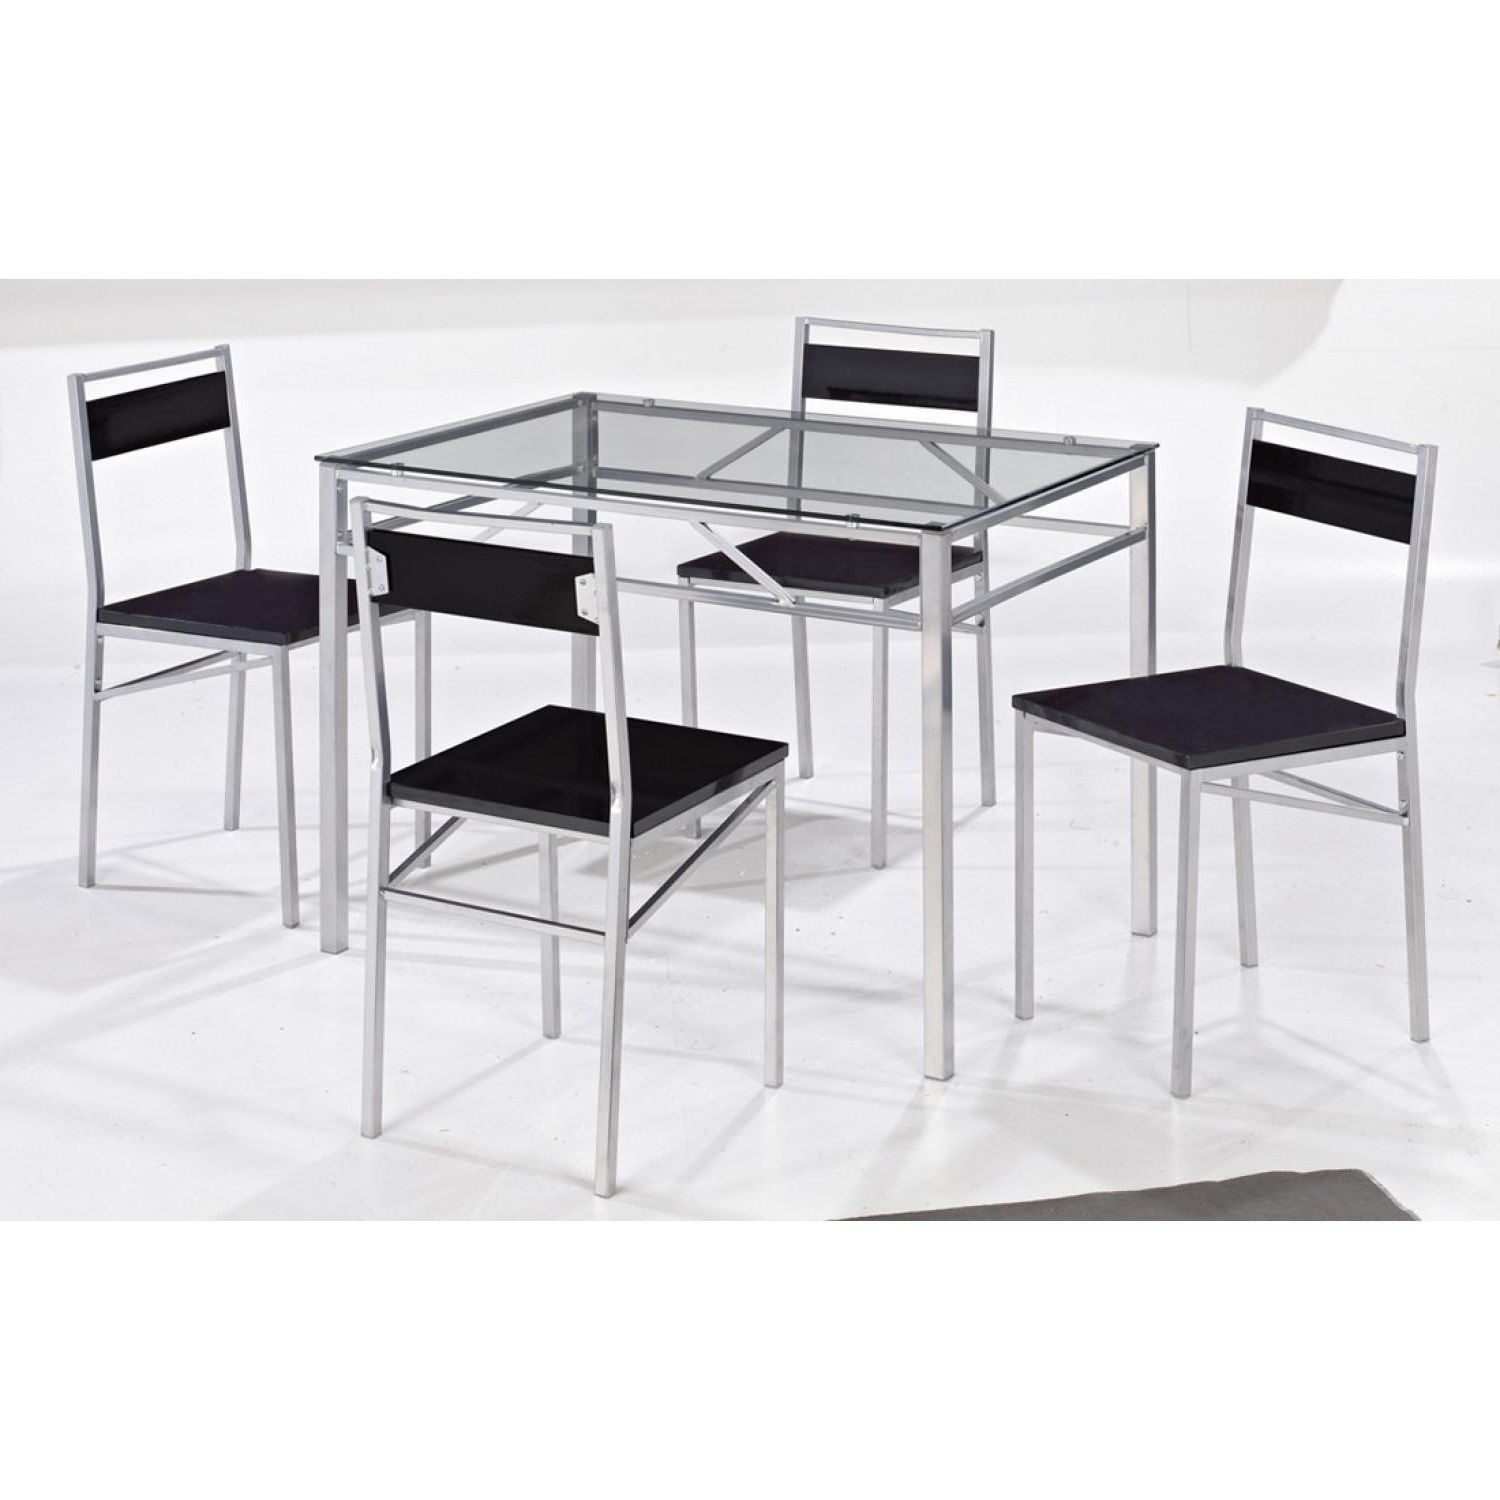 2018 Tokyo Dining Set 4 Seater – Clear Glass Dining Table & 4 Chairs Throughout Tokyo Dining Tables (View 4 of 25)